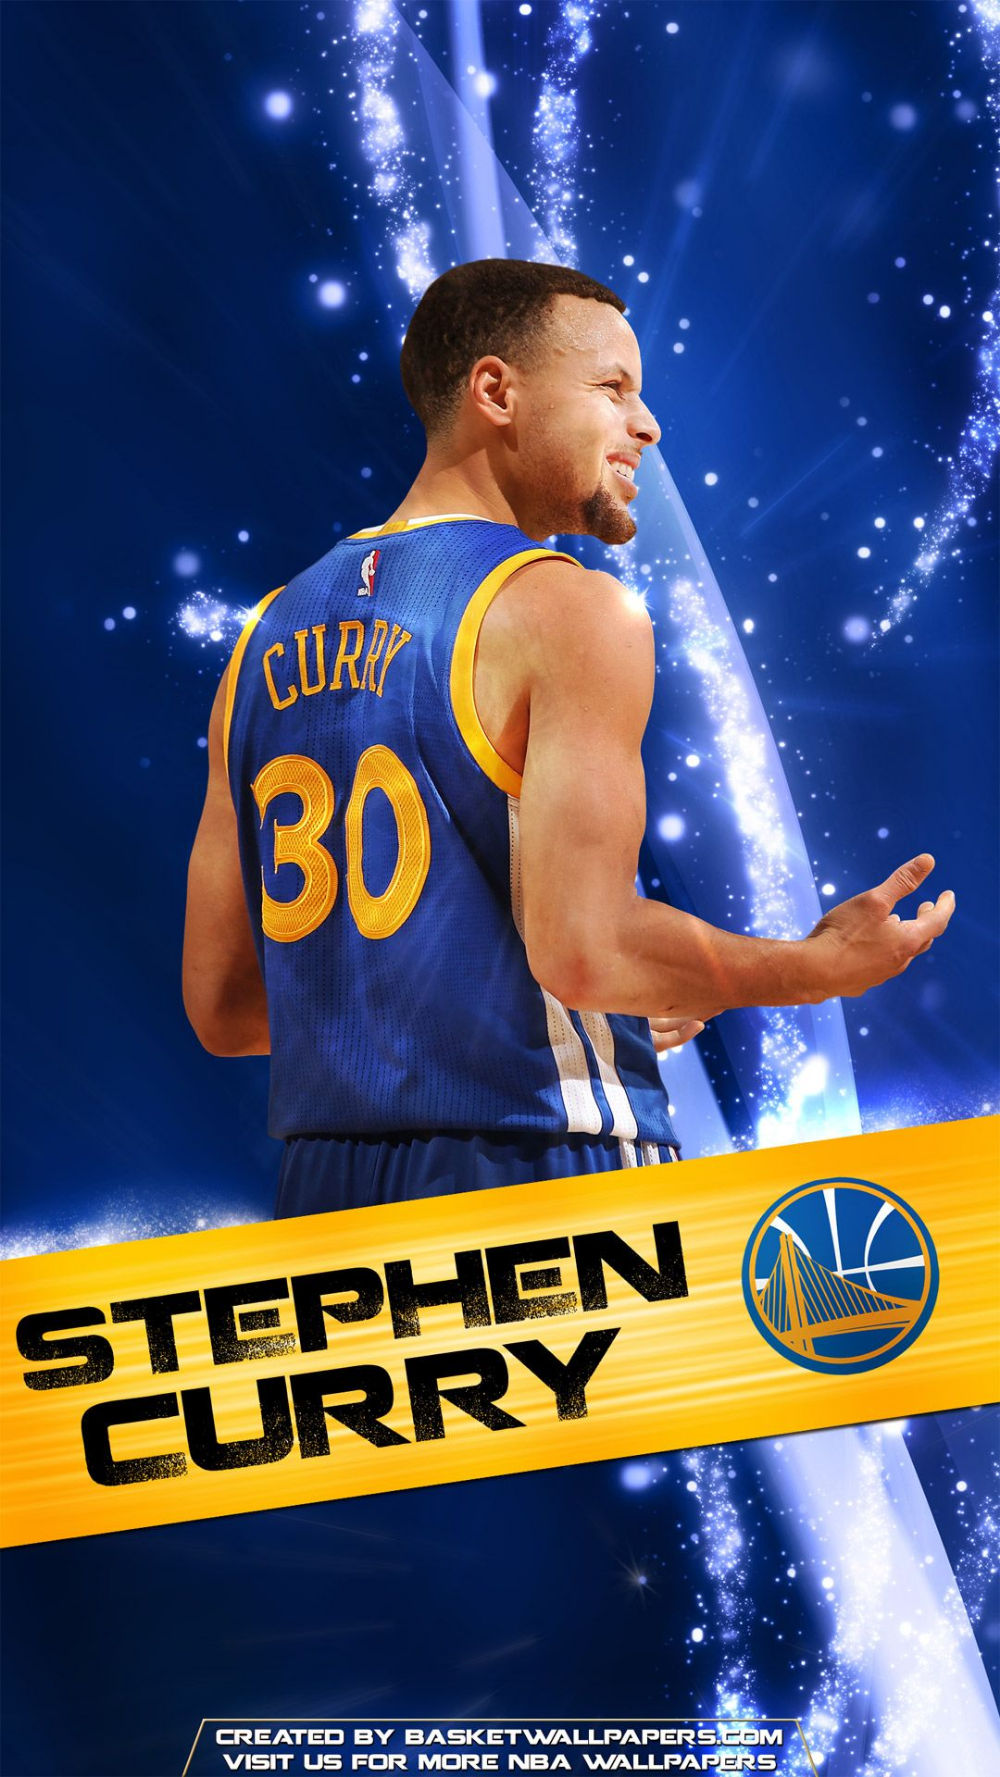 23 Stephen Curry Wallpaper Hd Itstake Me Stephen Curry Wallpaper Curry Wallpaper Nba Stephen Curry